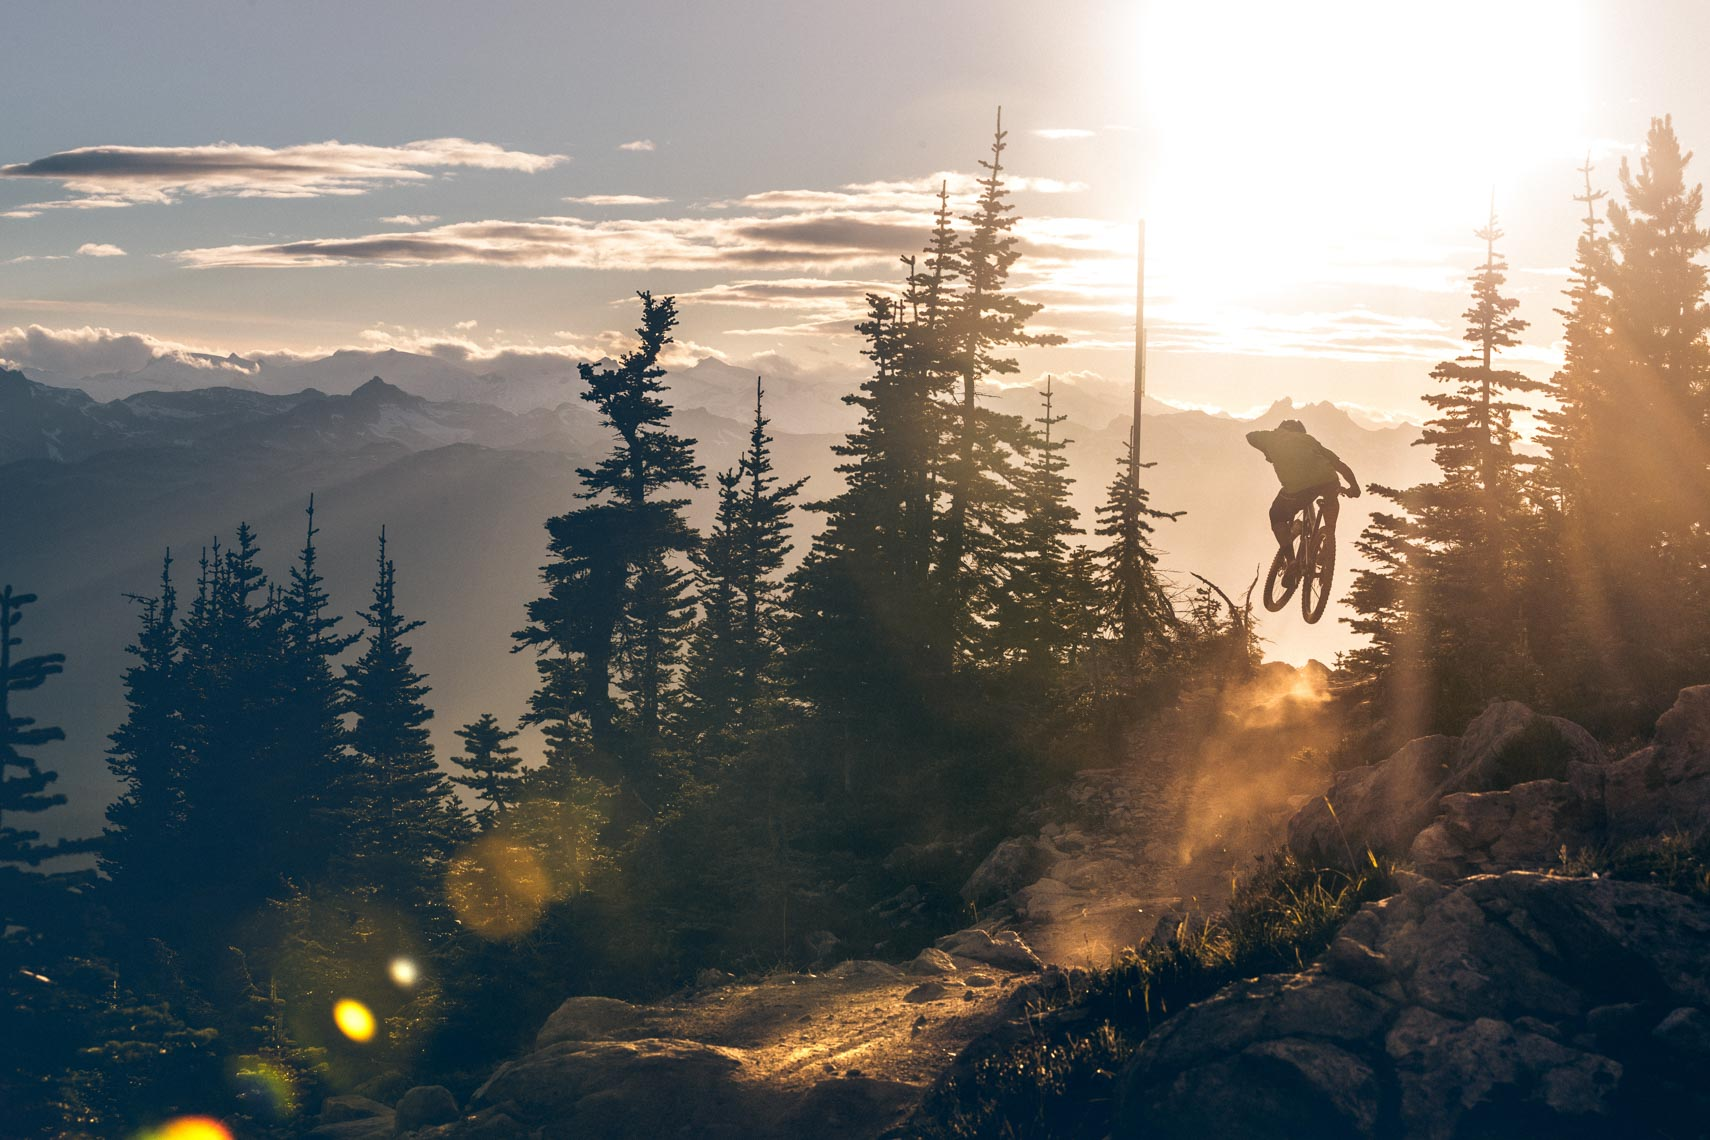 Silhouette mountain bike athlete at sunset in the mountains of Whistler, BC